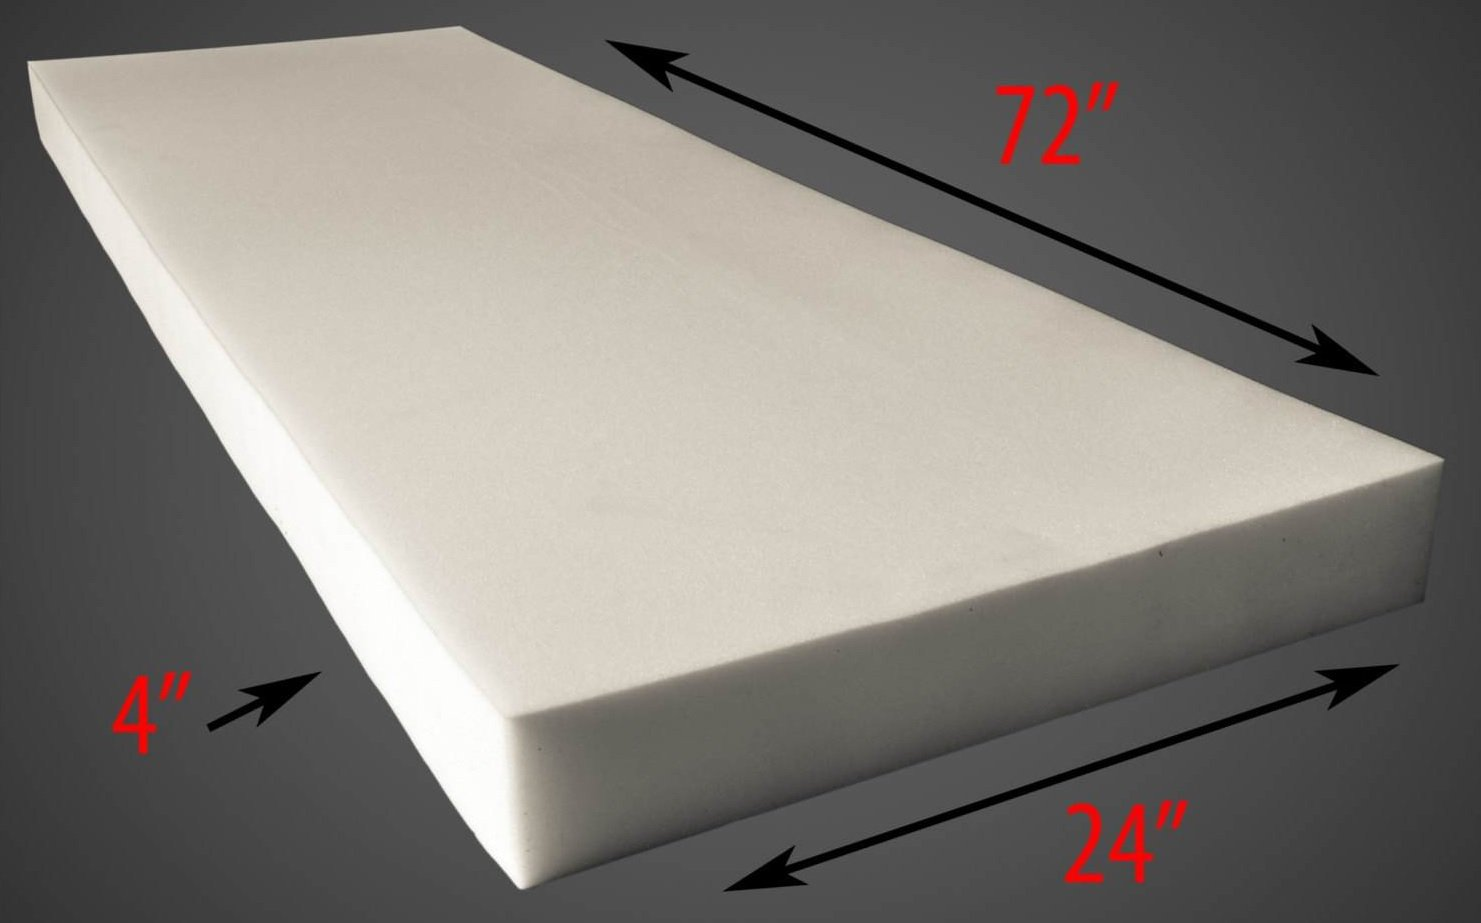 AK Trading CO. 4 X 24 X 72 Upholstery Foam Cushion (Seat Replacement, Upholstery Sheet, Foam Padding)